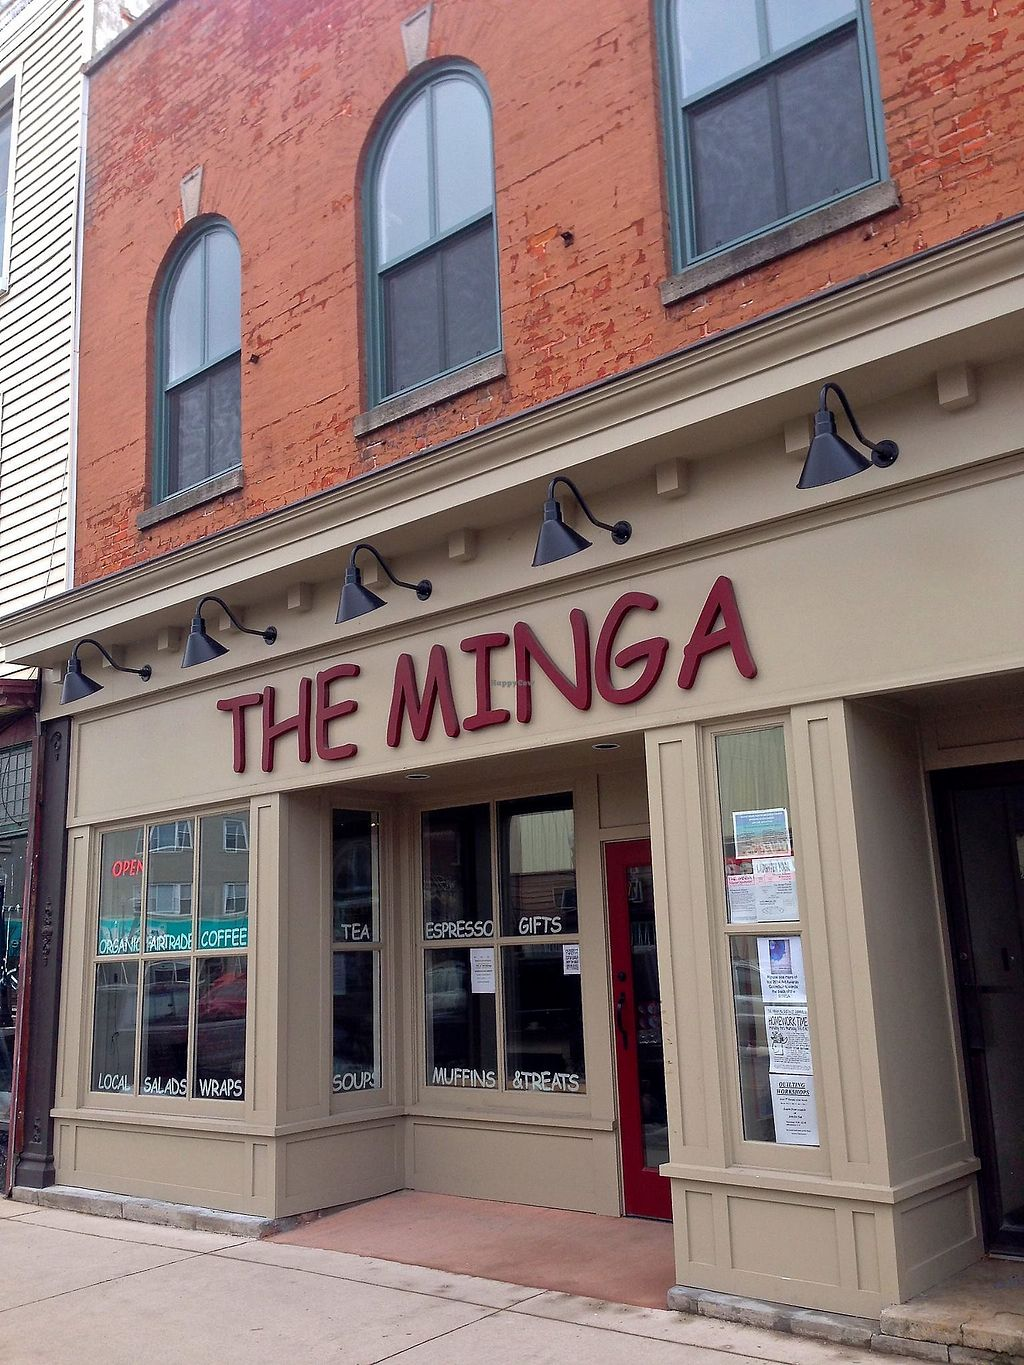 """Photo of The Minga Cafe  by <a href=""""/members/profile/Minga"""">Minga</a> <br/>Our cafe storefront <br/> December 10, 2017  - <a href='/contact/abuse/image/106967/334382'>Report</a>"""